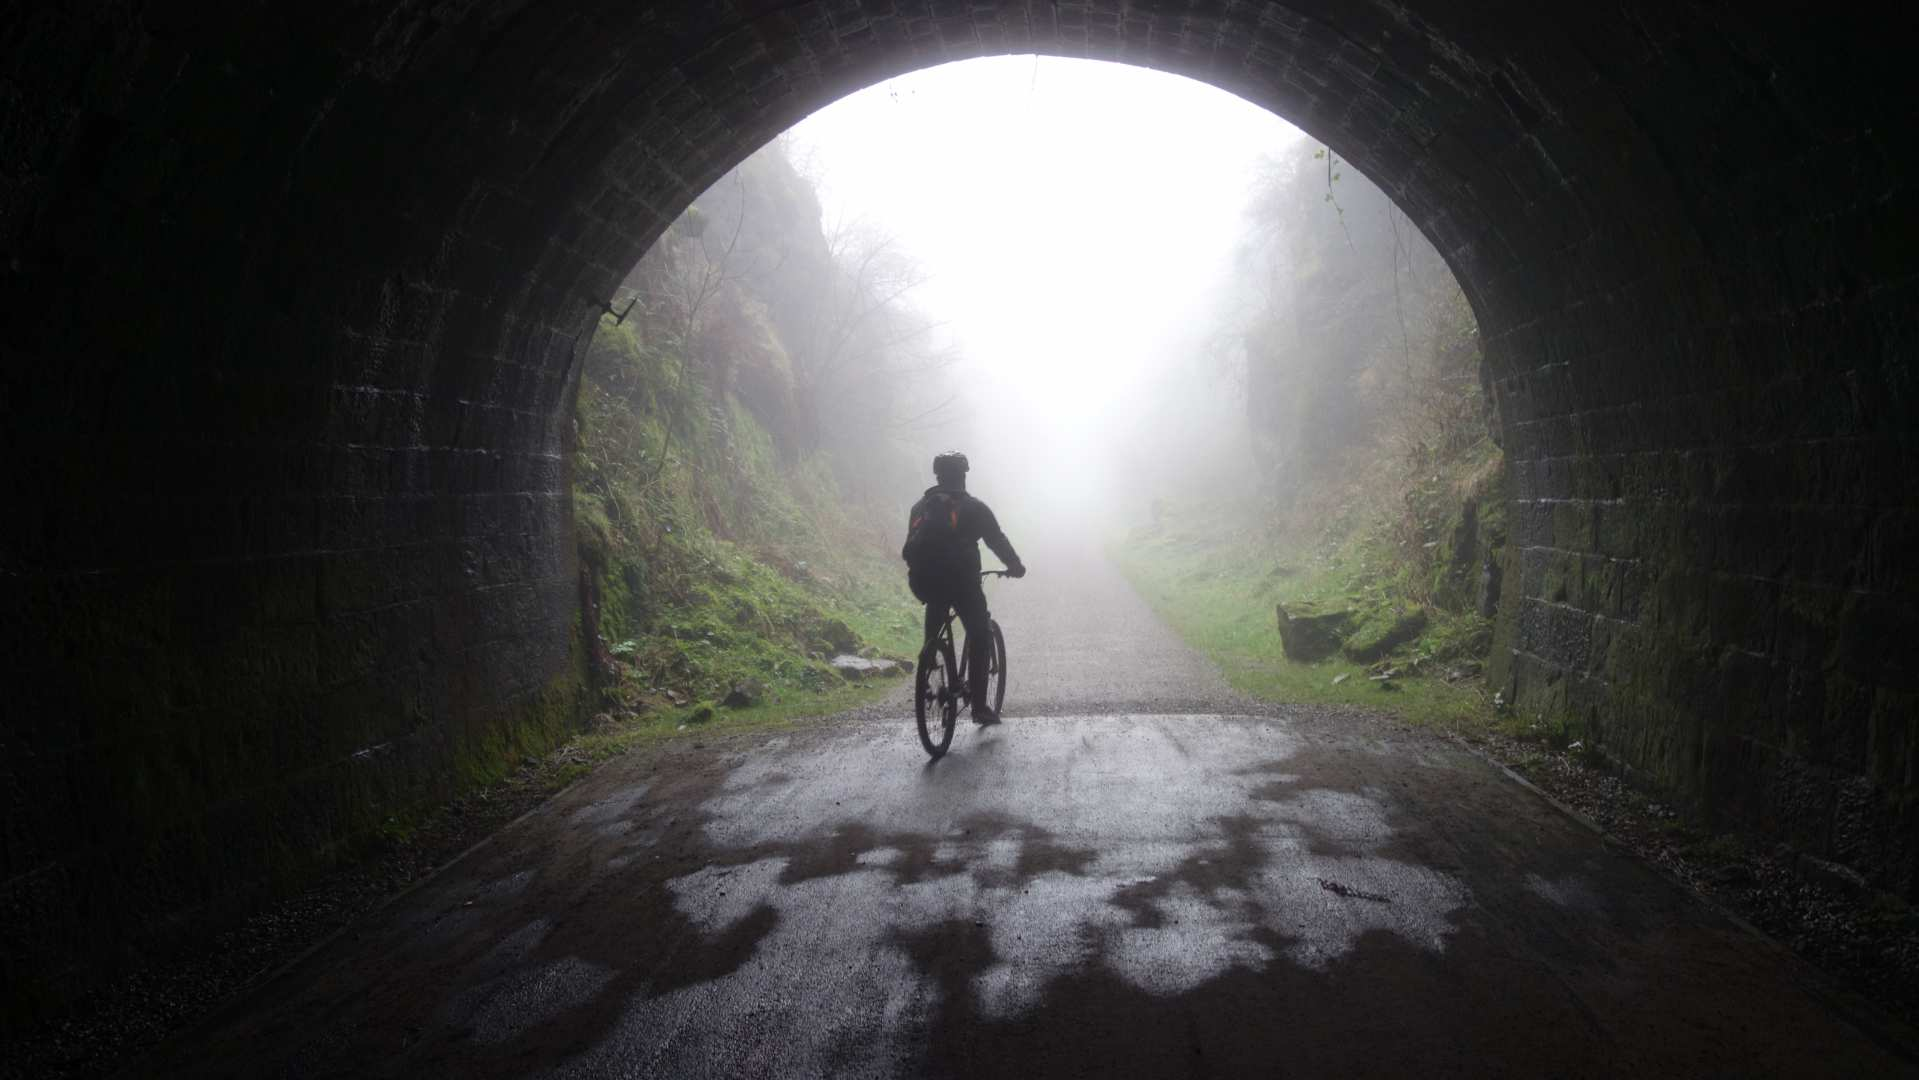 Cycling through Chee Tor Tunnel in the White Peak